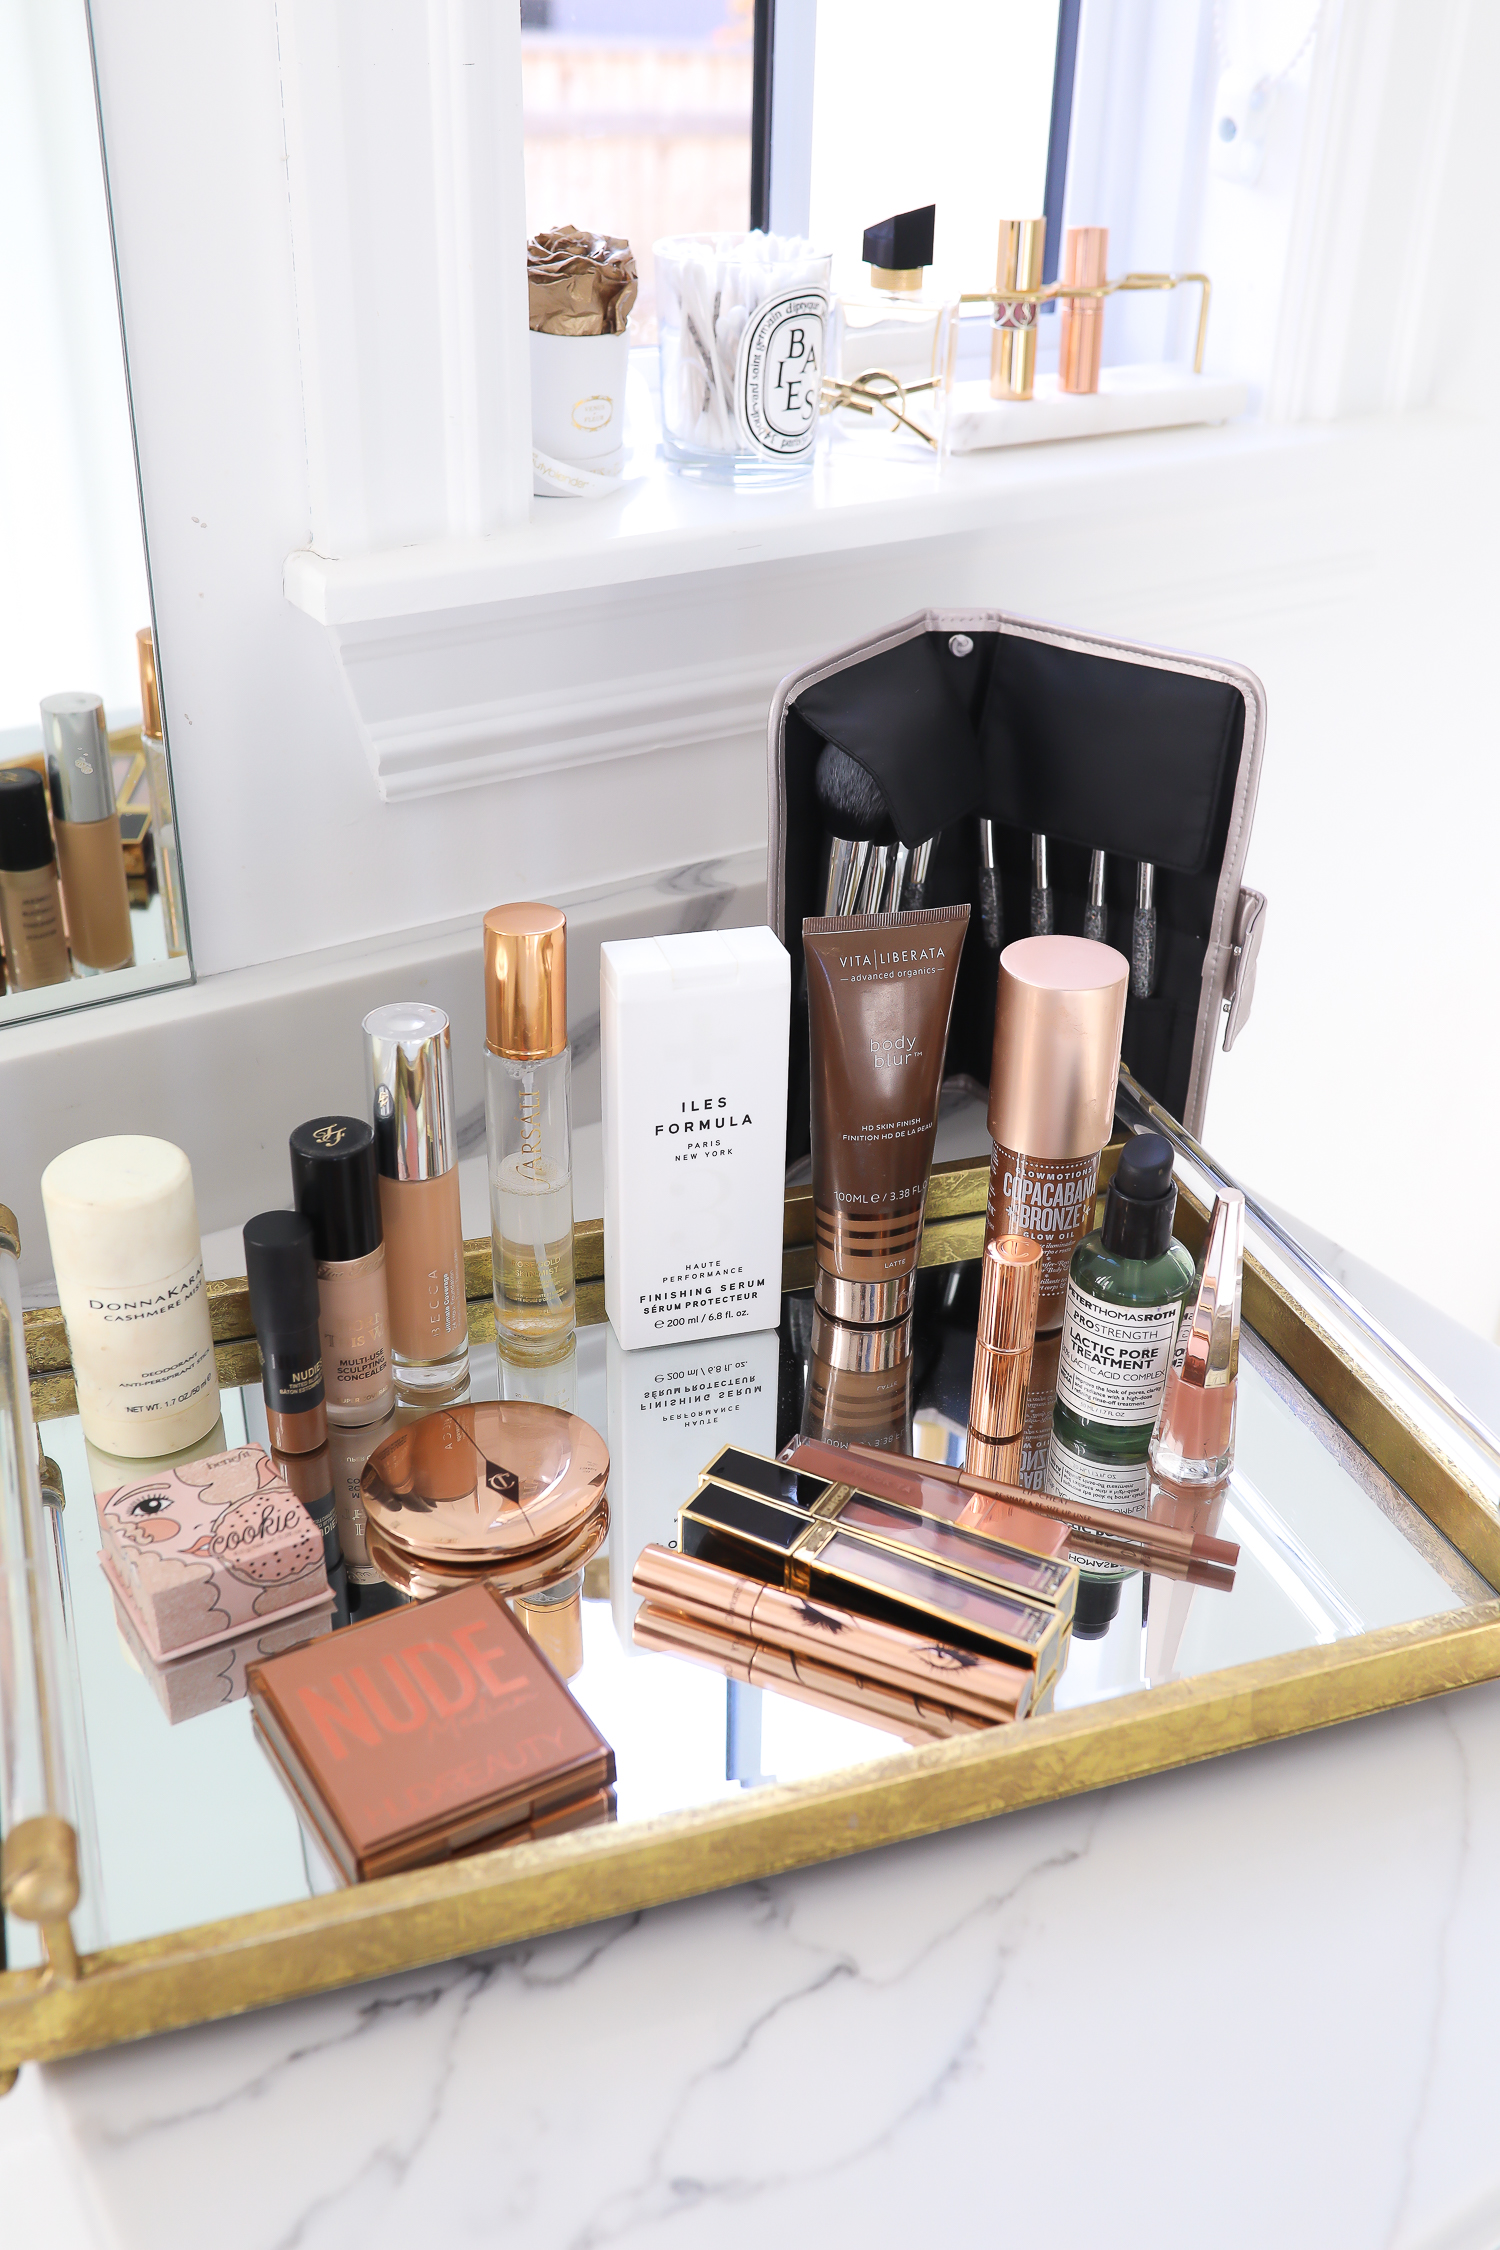 Sephora Holiday Beauty Event favorites featured by top US beauty blog, The Sweetest Thing | Sephora VIB Event november 2019, Sephora Must Haves, Beauty Blogger Sephora Haul, Sequin Wrap dress, SEquin dress 2019, emily ann gemma-2